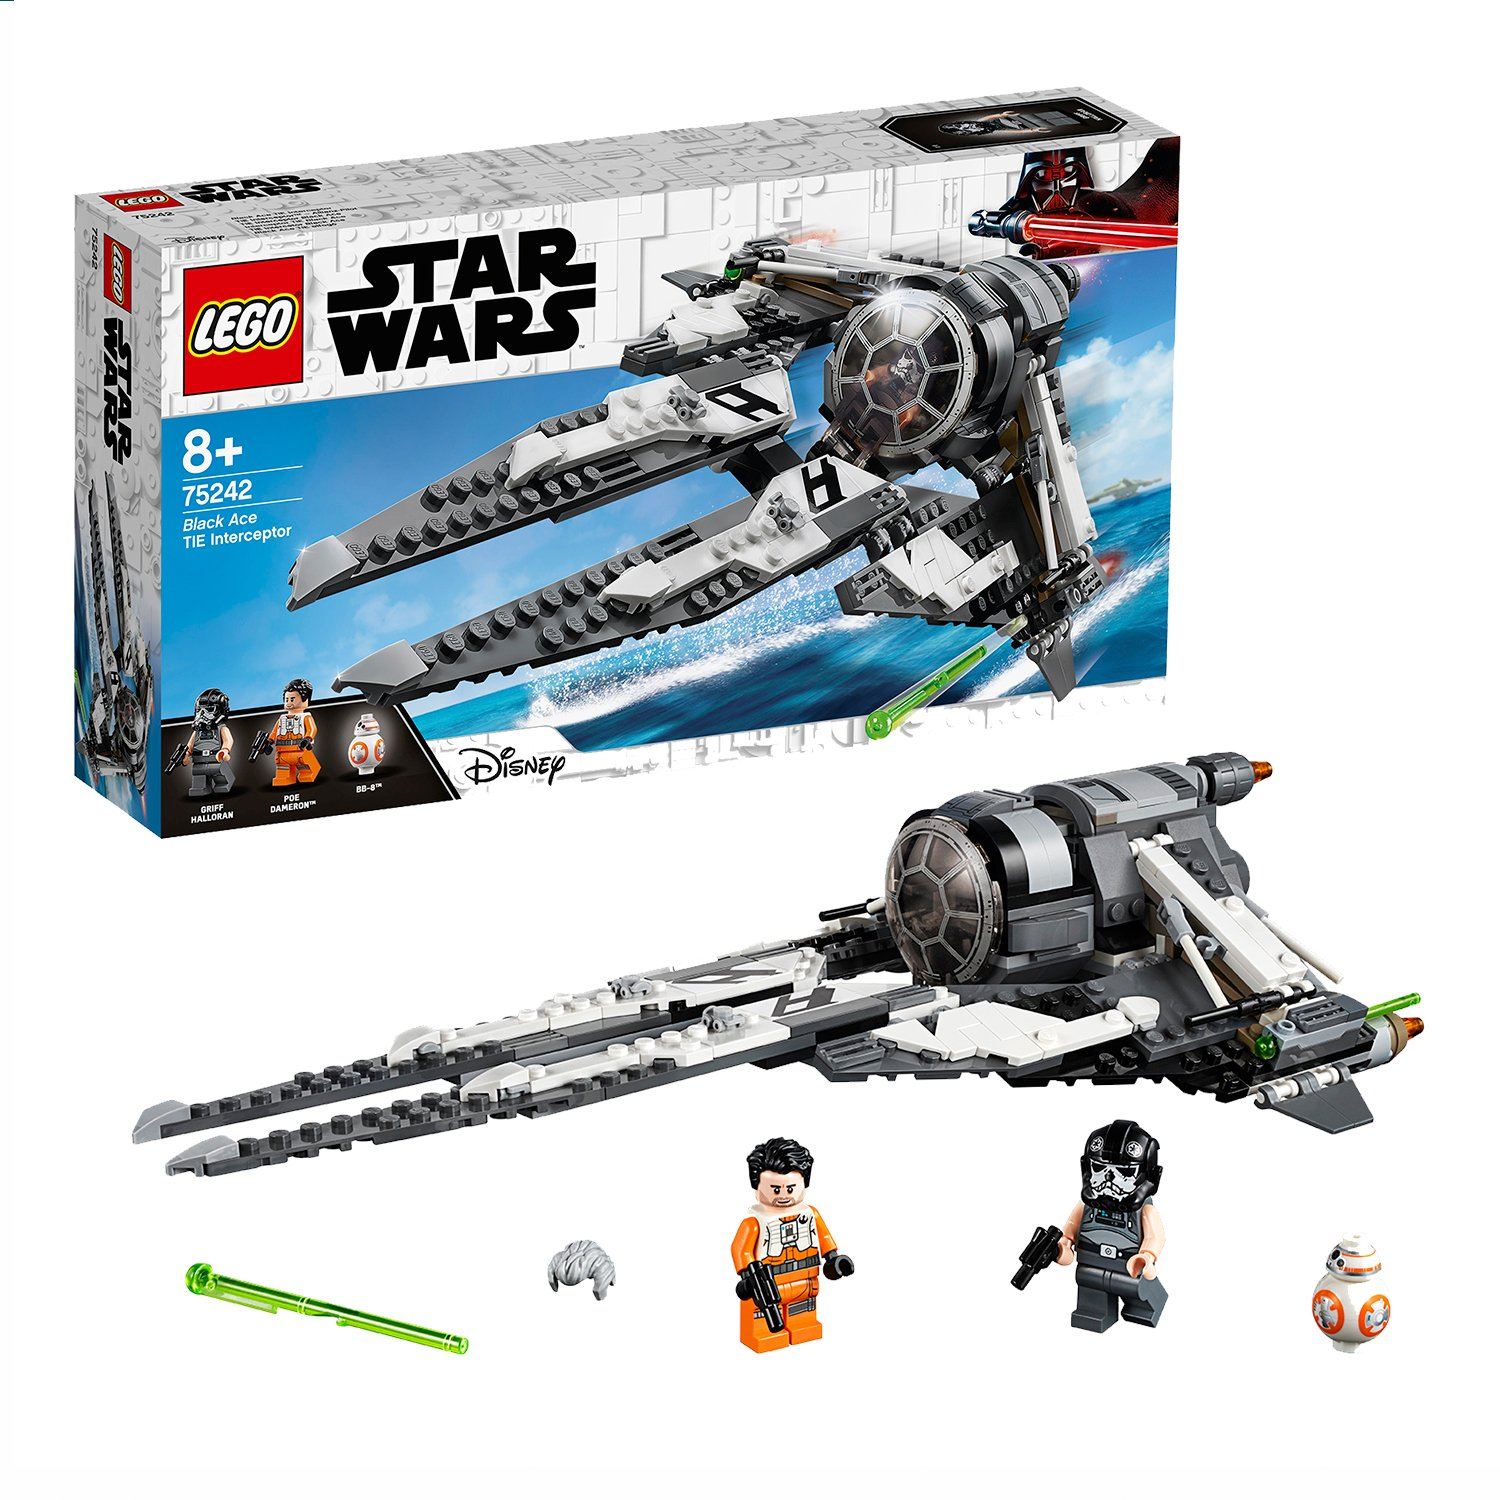 LEGO Star Wars Resistance Black Ace TIE Interceptor - 75242